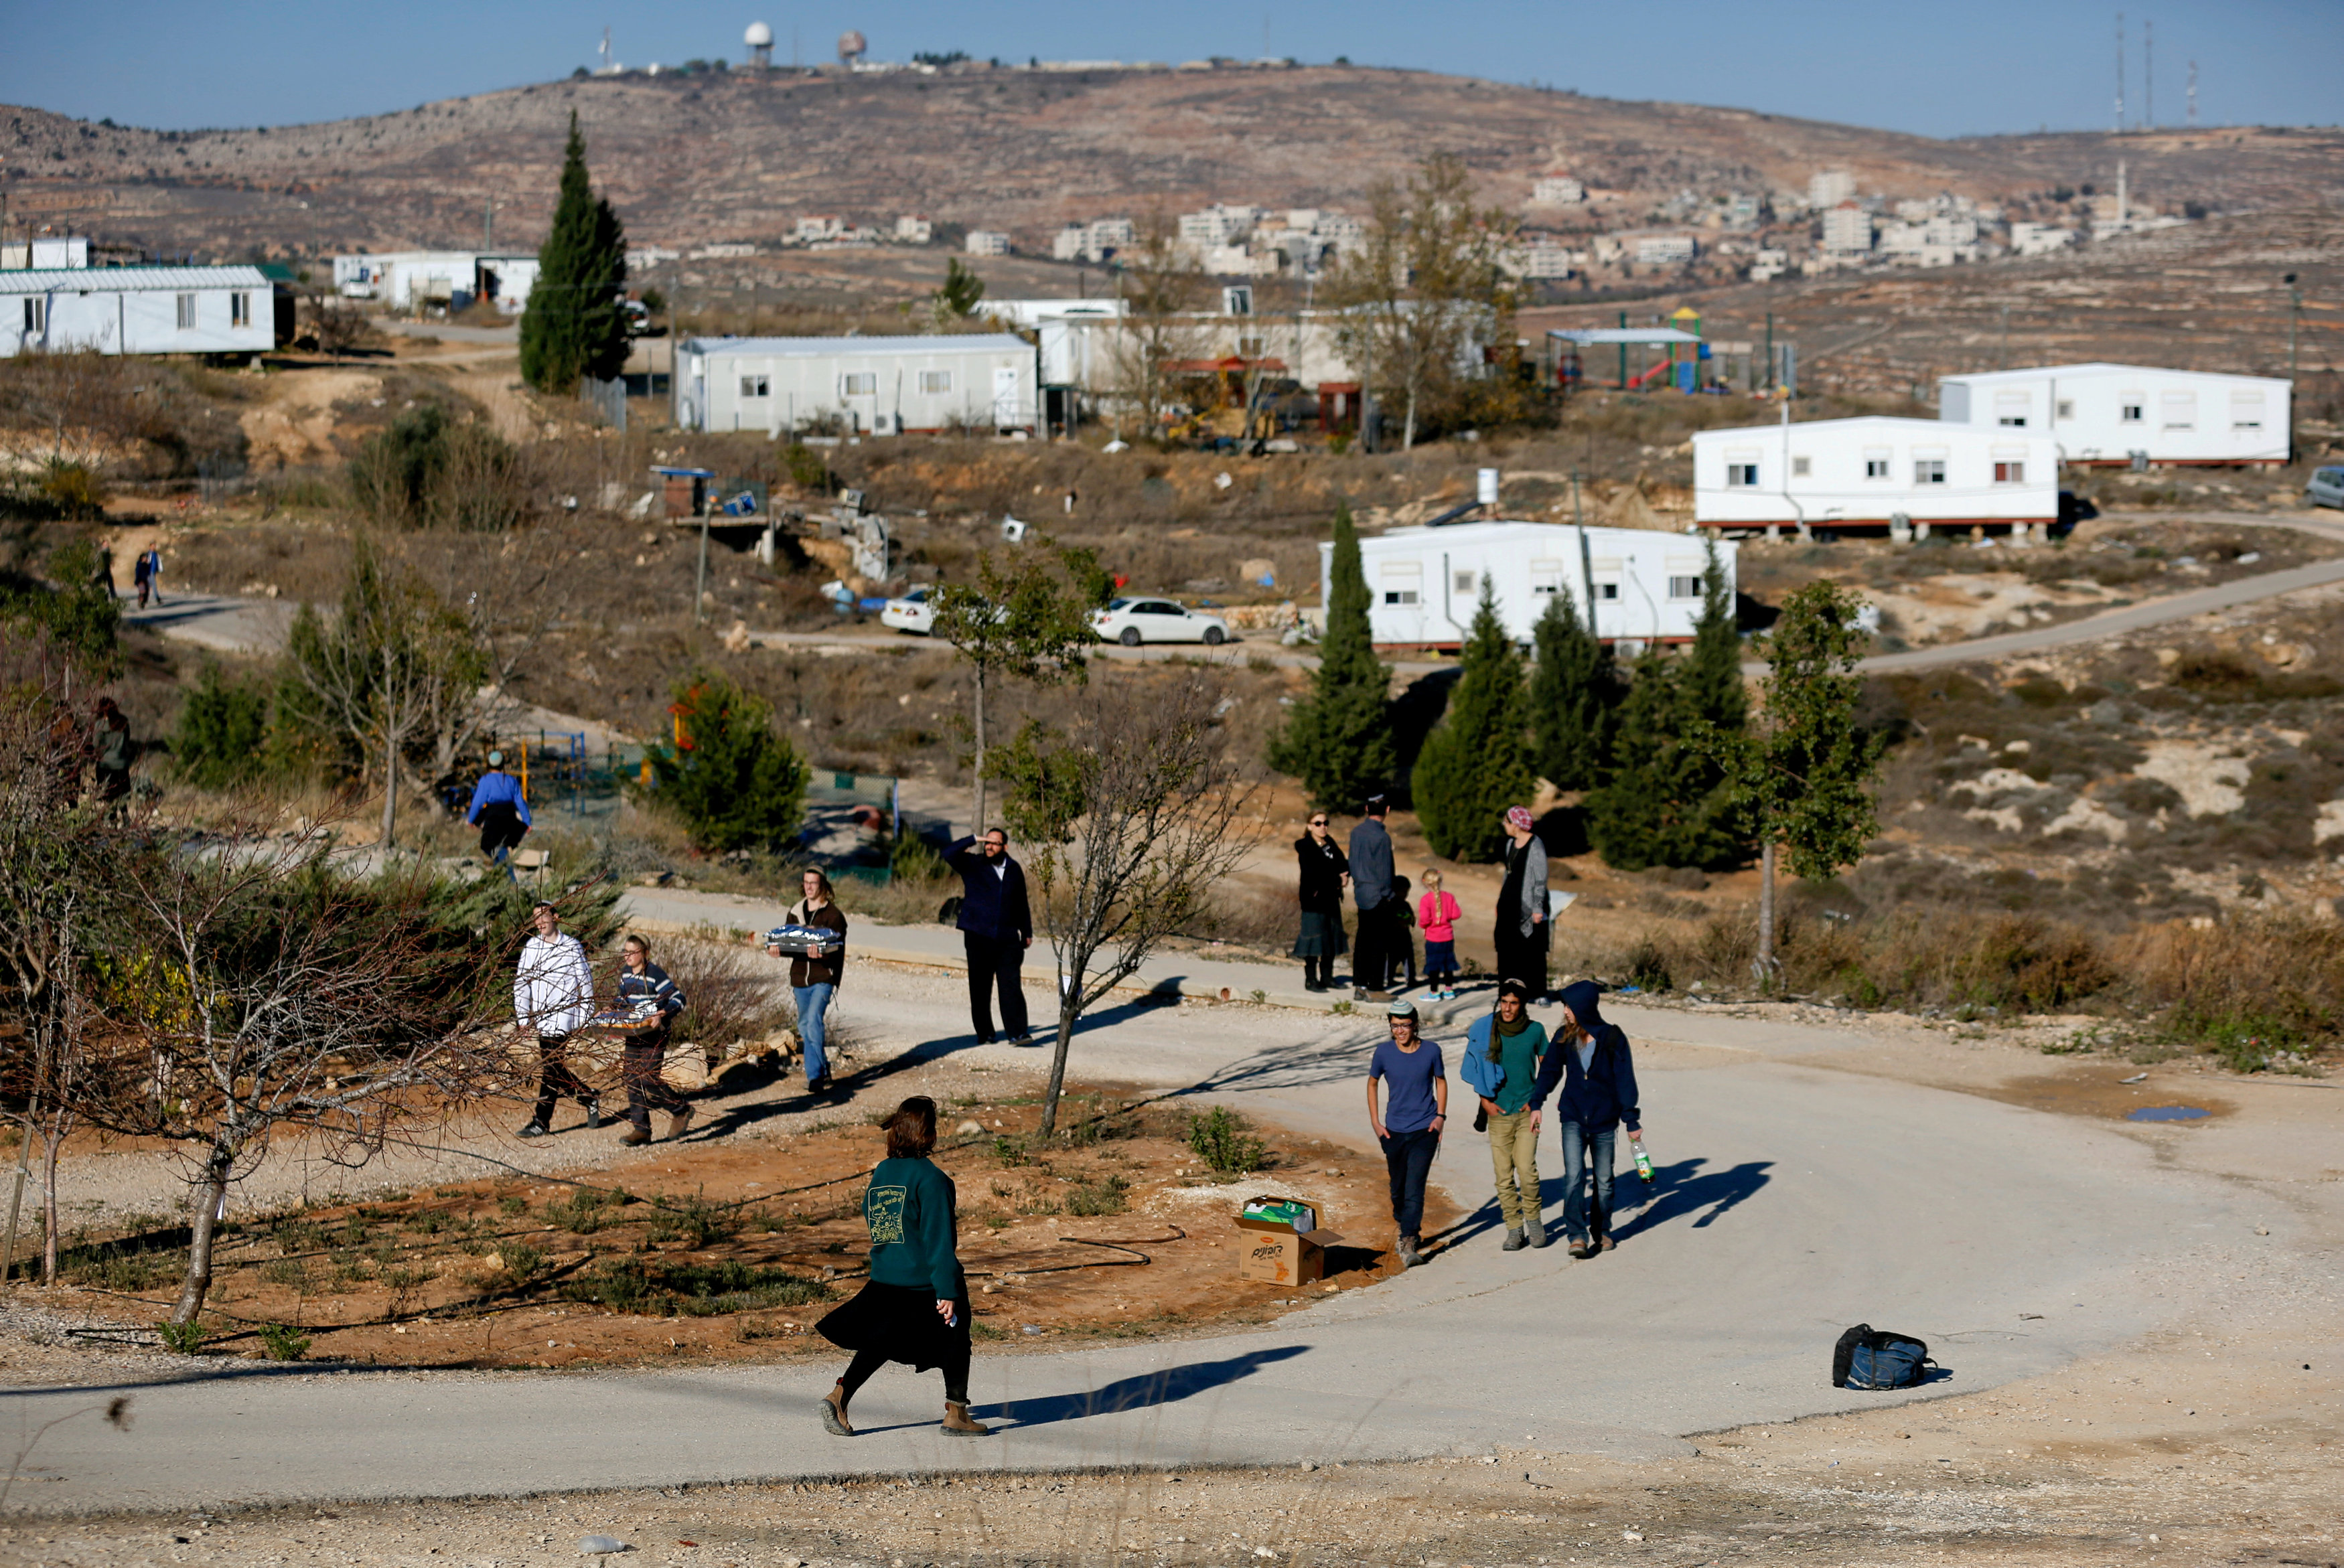 Jewish settlers preparing for eviction